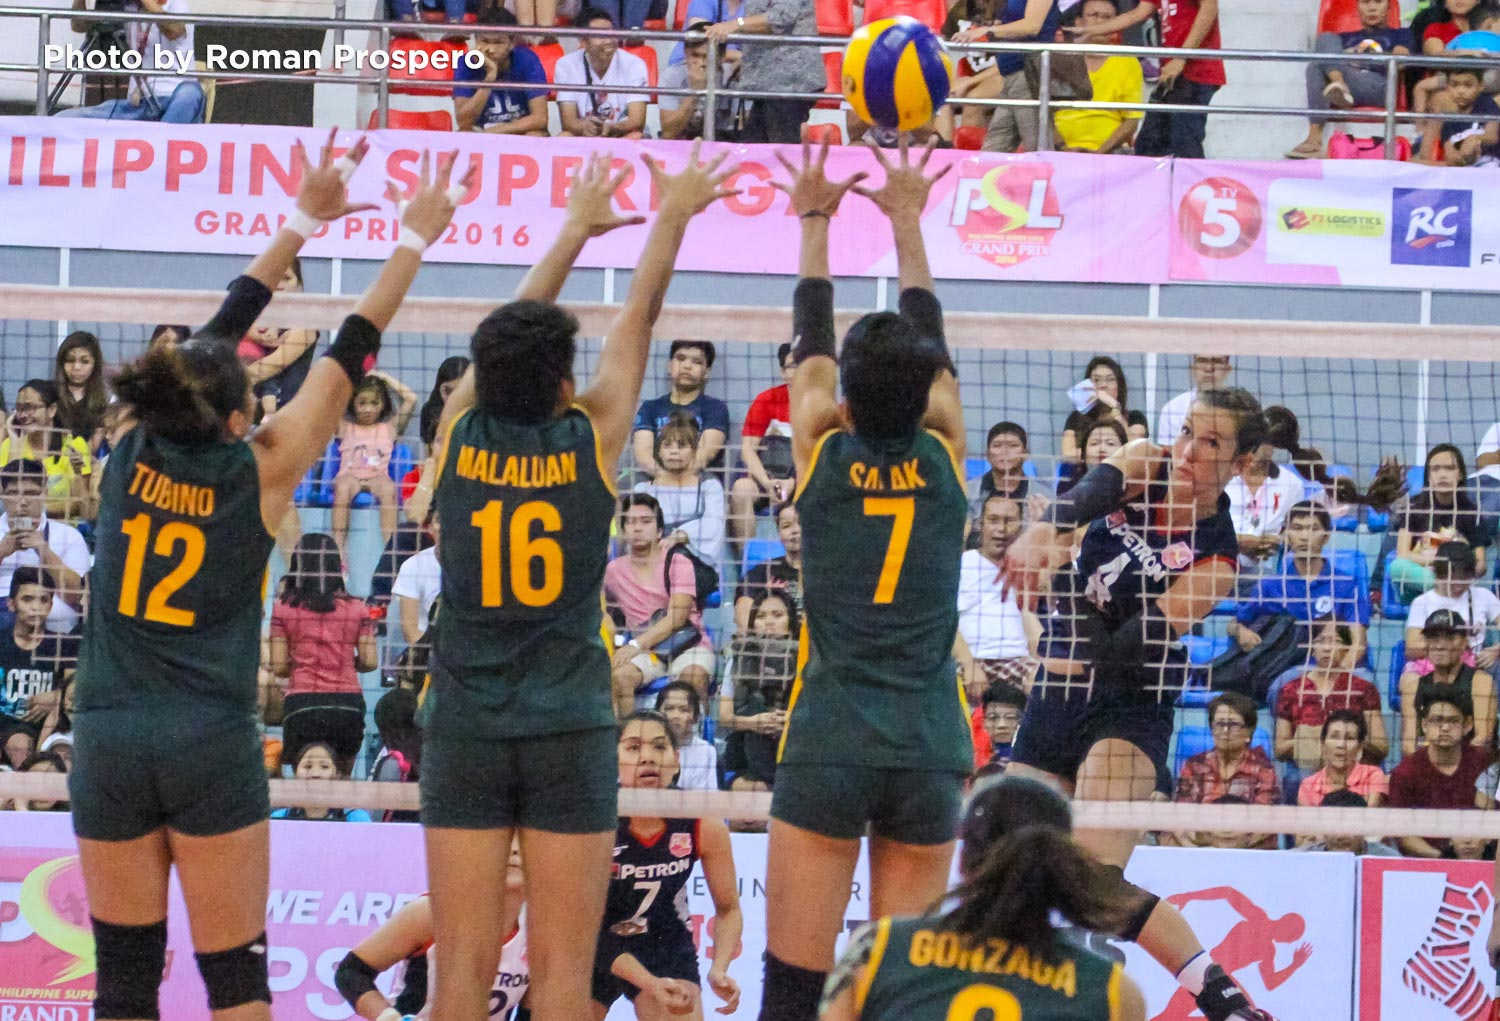 Tiebreaker Times Niemer shows might as Petron overpowers RC Cola Army PSL Sports Volleyball  Stephanie Niemer Serena Warner Royse Tubino RC Cola Army Lady Troopers Petron Tri-activ Spikers Jovelyn Gonzaga Hailie Ripley Aiza Maizo-Pontillas 2016 PSL Grand Prix